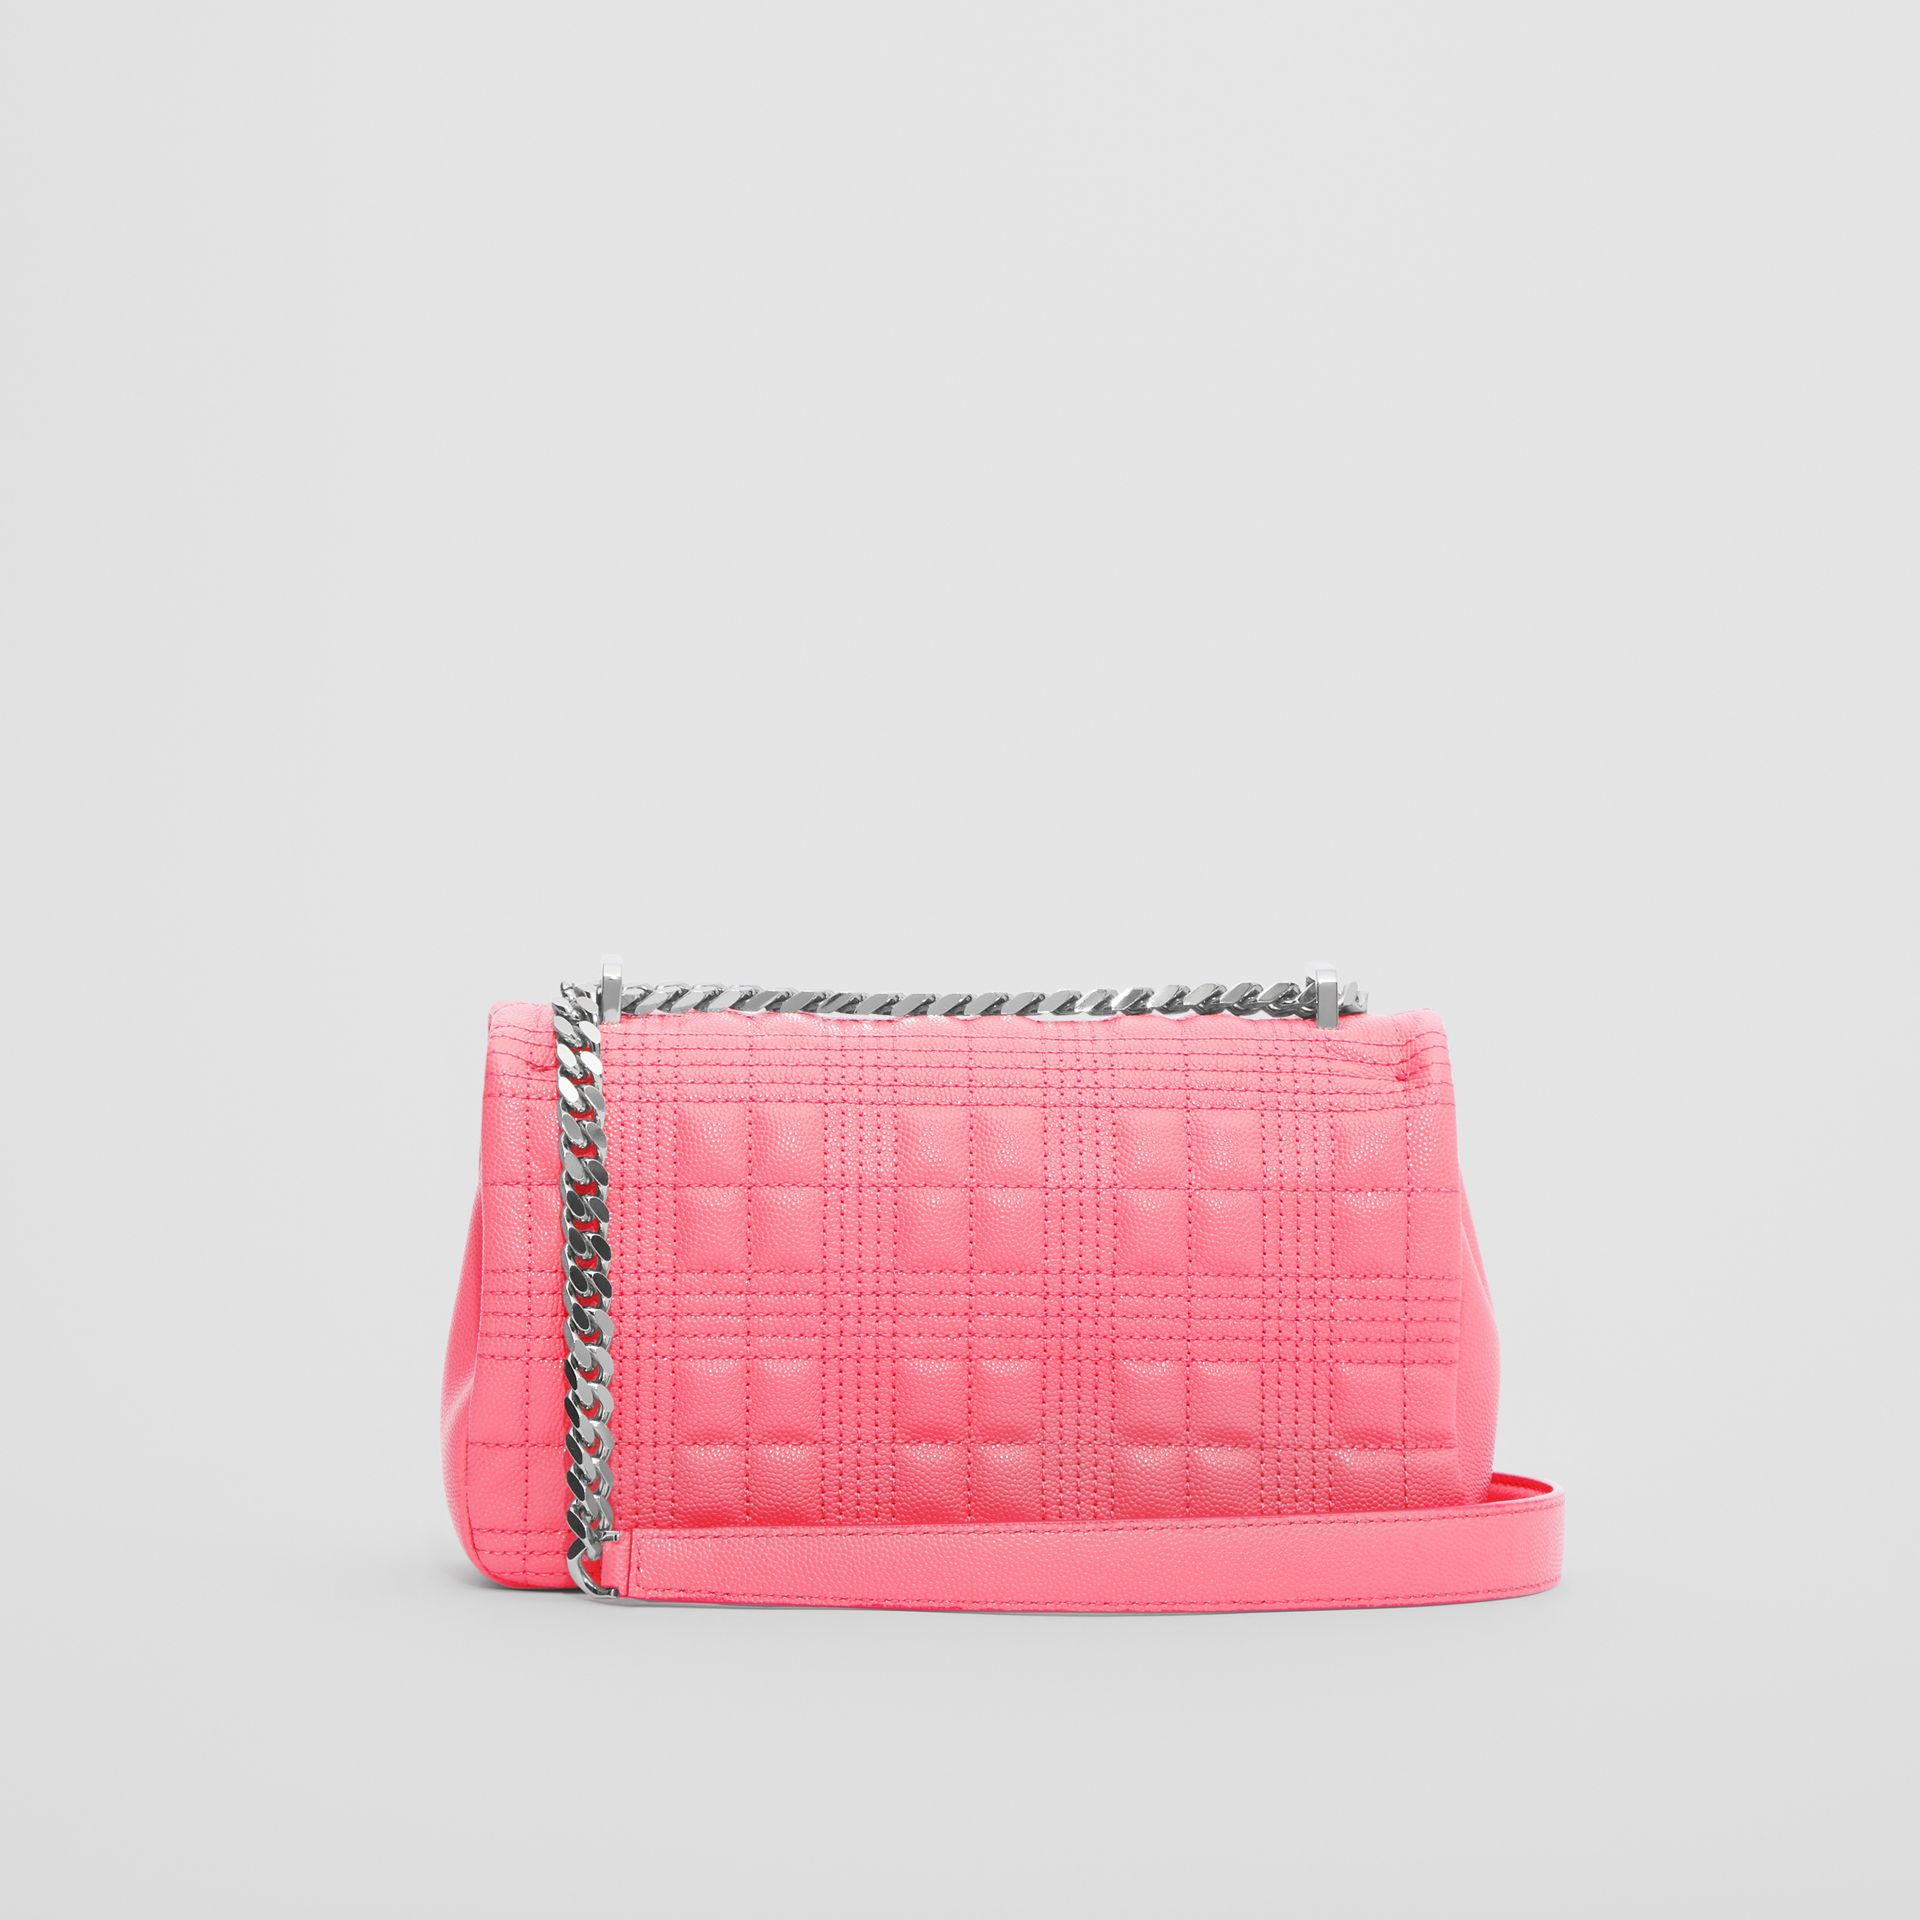 Small Quilted Grainy Leather Lola Bag in Candy Floss - Women | Burberry - gallery image 6